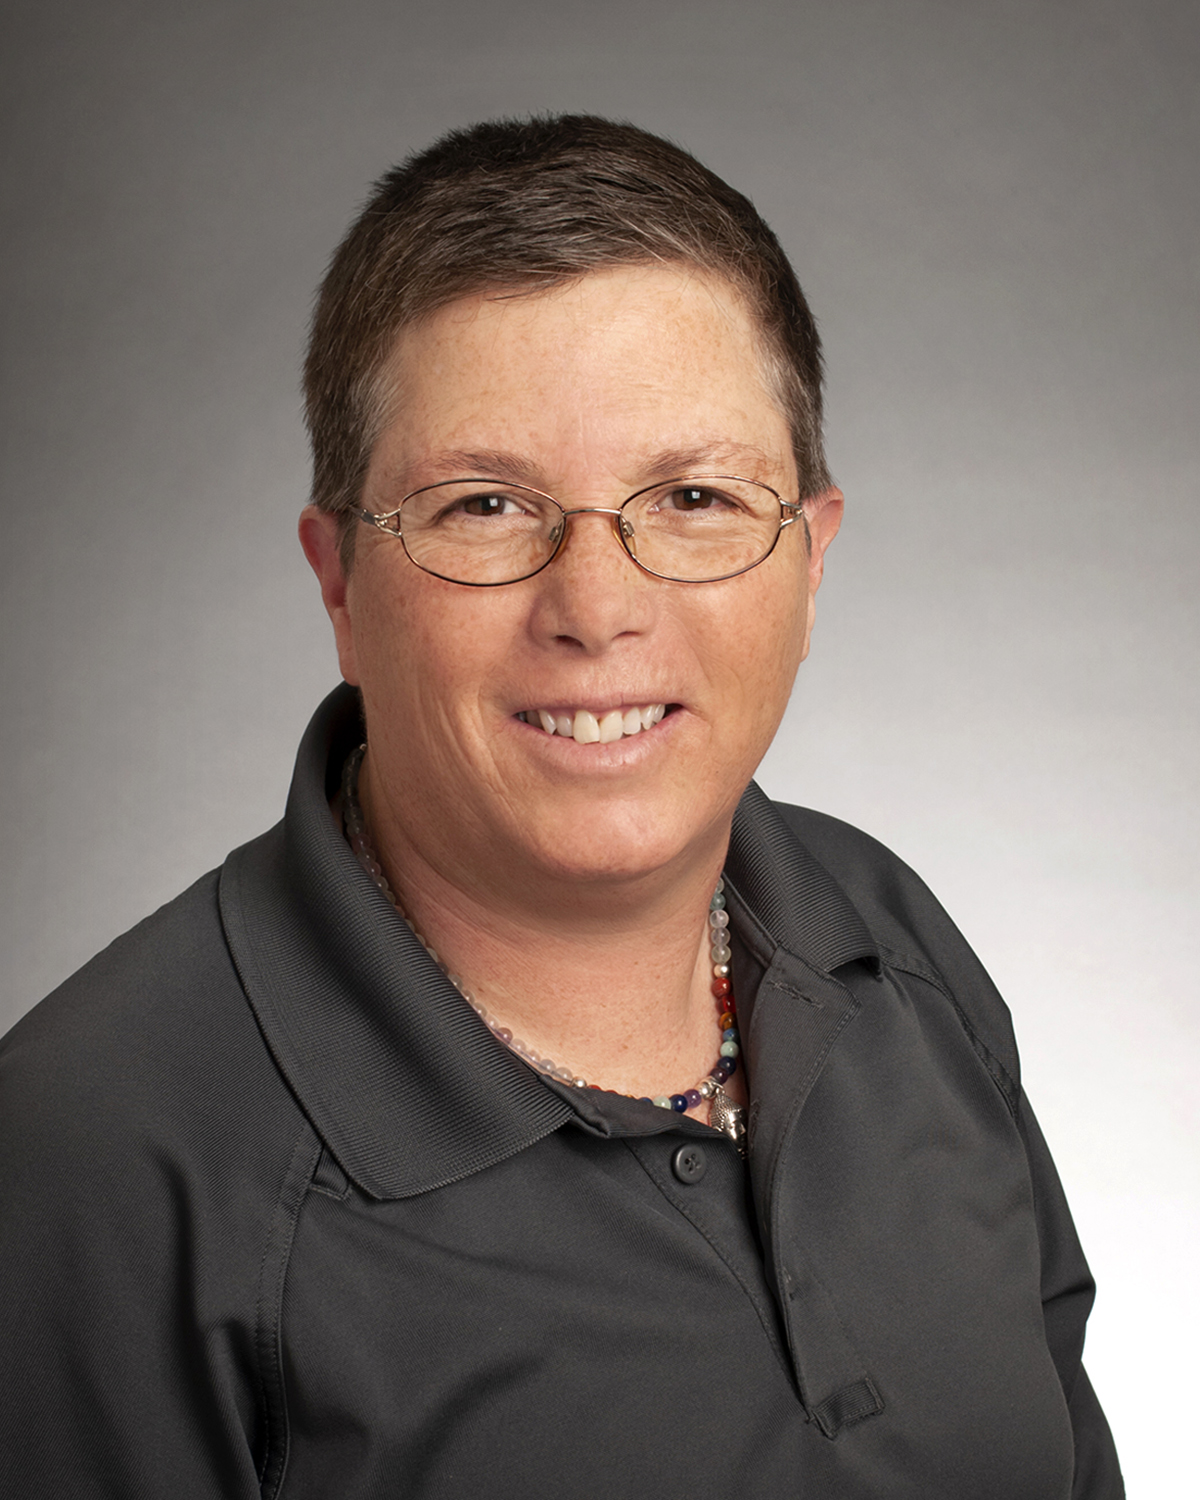 Kim Gibbons, Public Safety, faculty/staff, studio portrait by Priscilla Grover